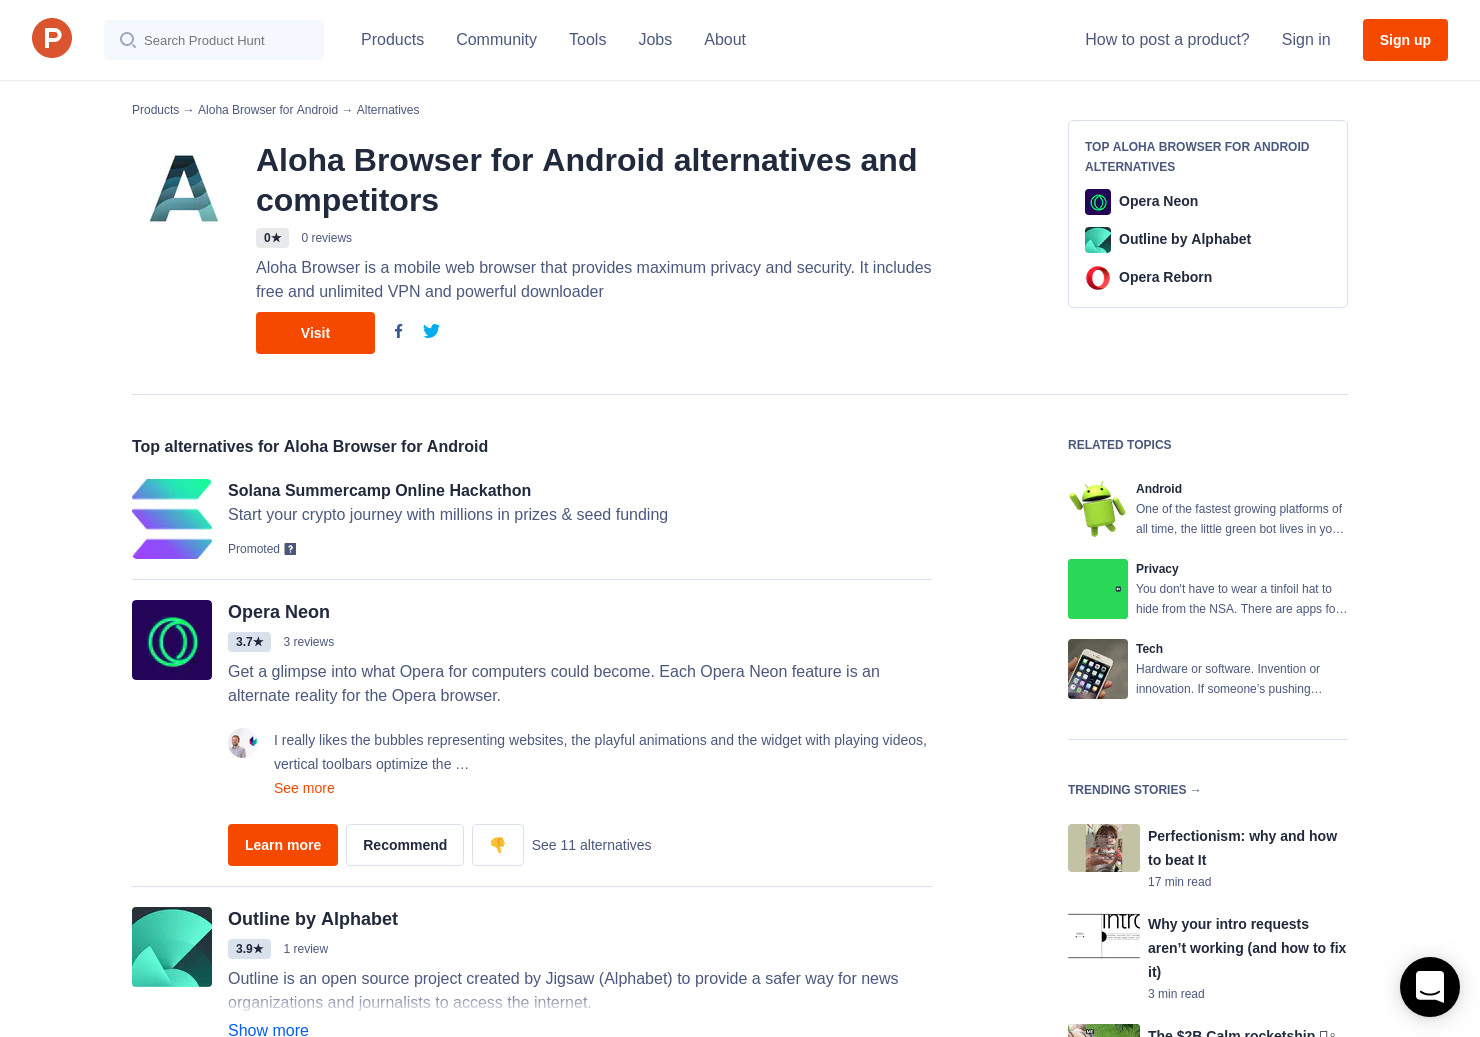 16 Alternatives to Aloha Browser for Android for Android | Product Hunt